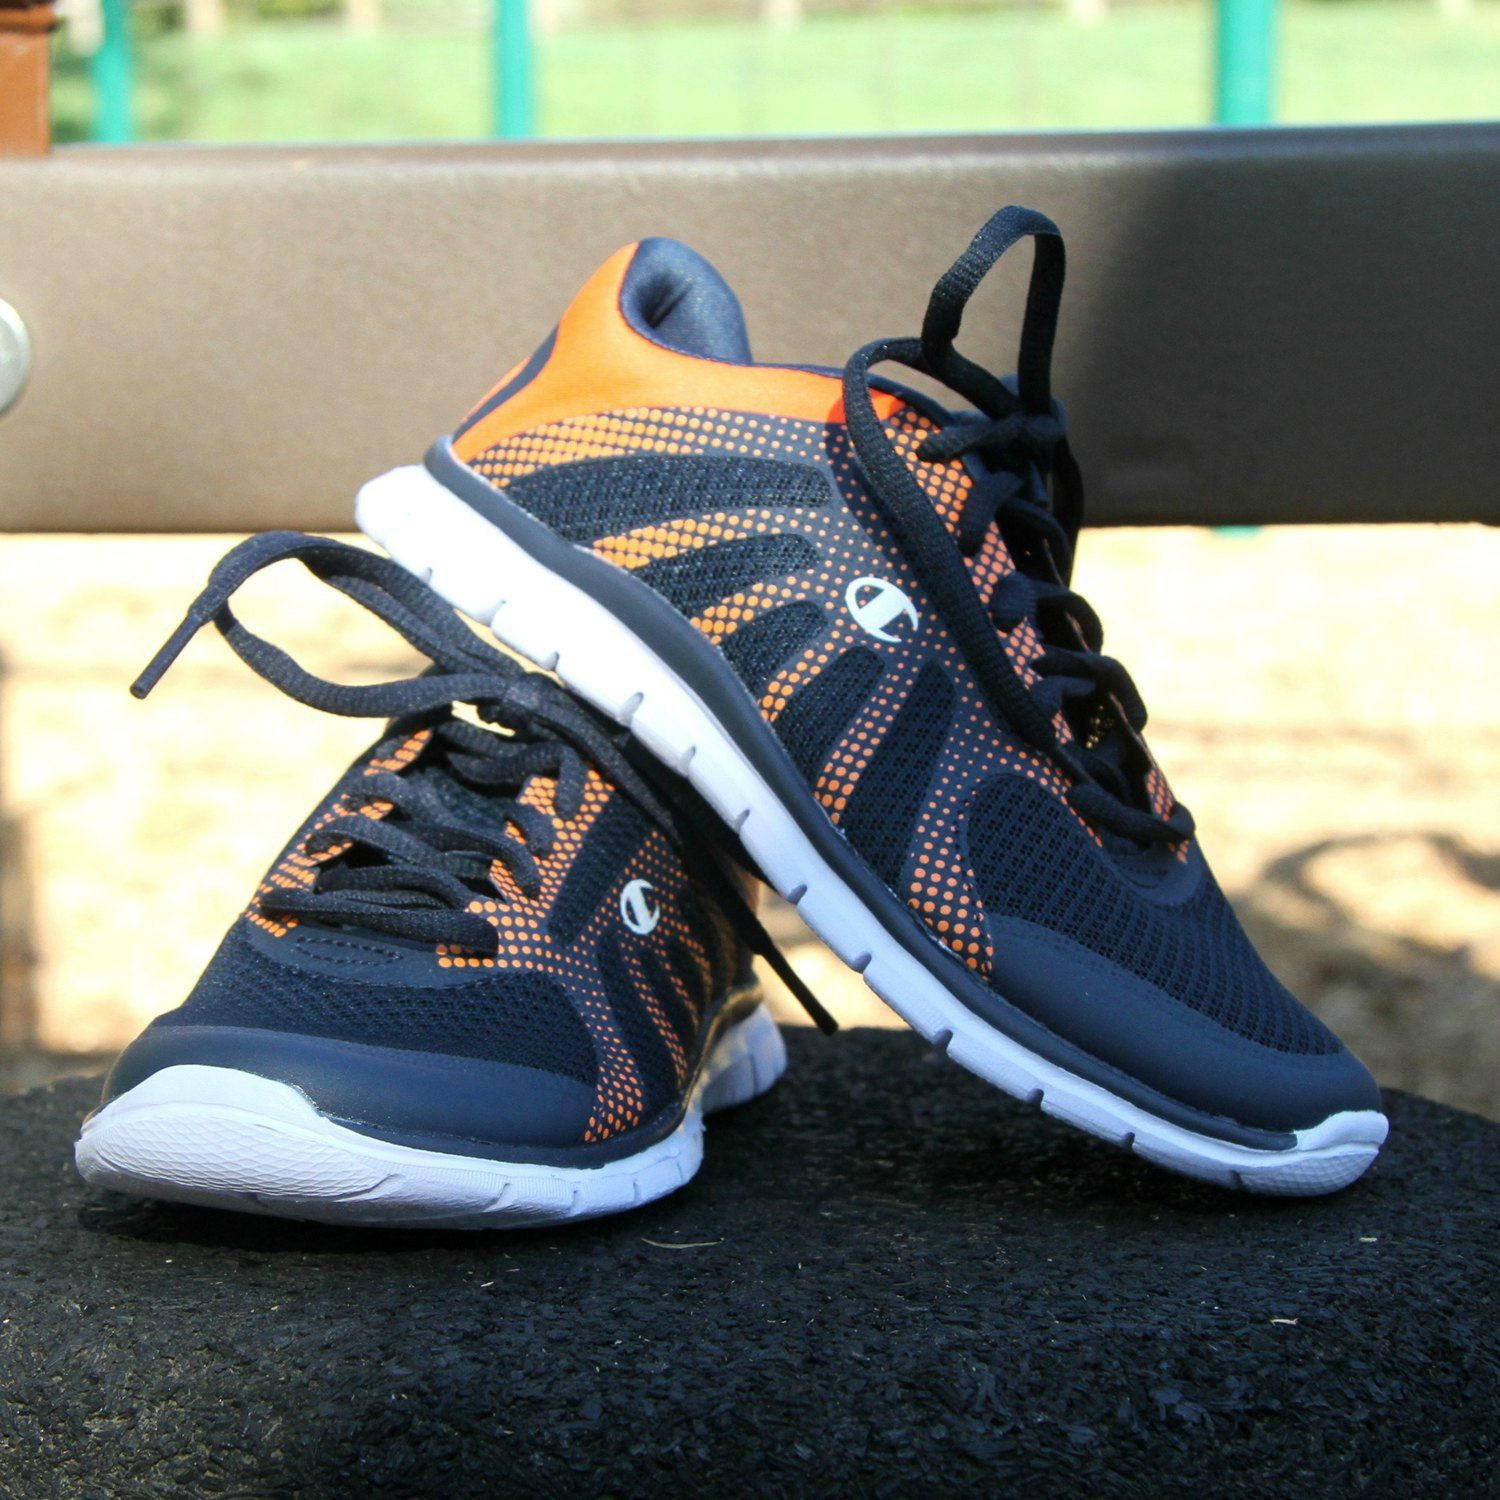 Roller shoes payless - Workout Routines